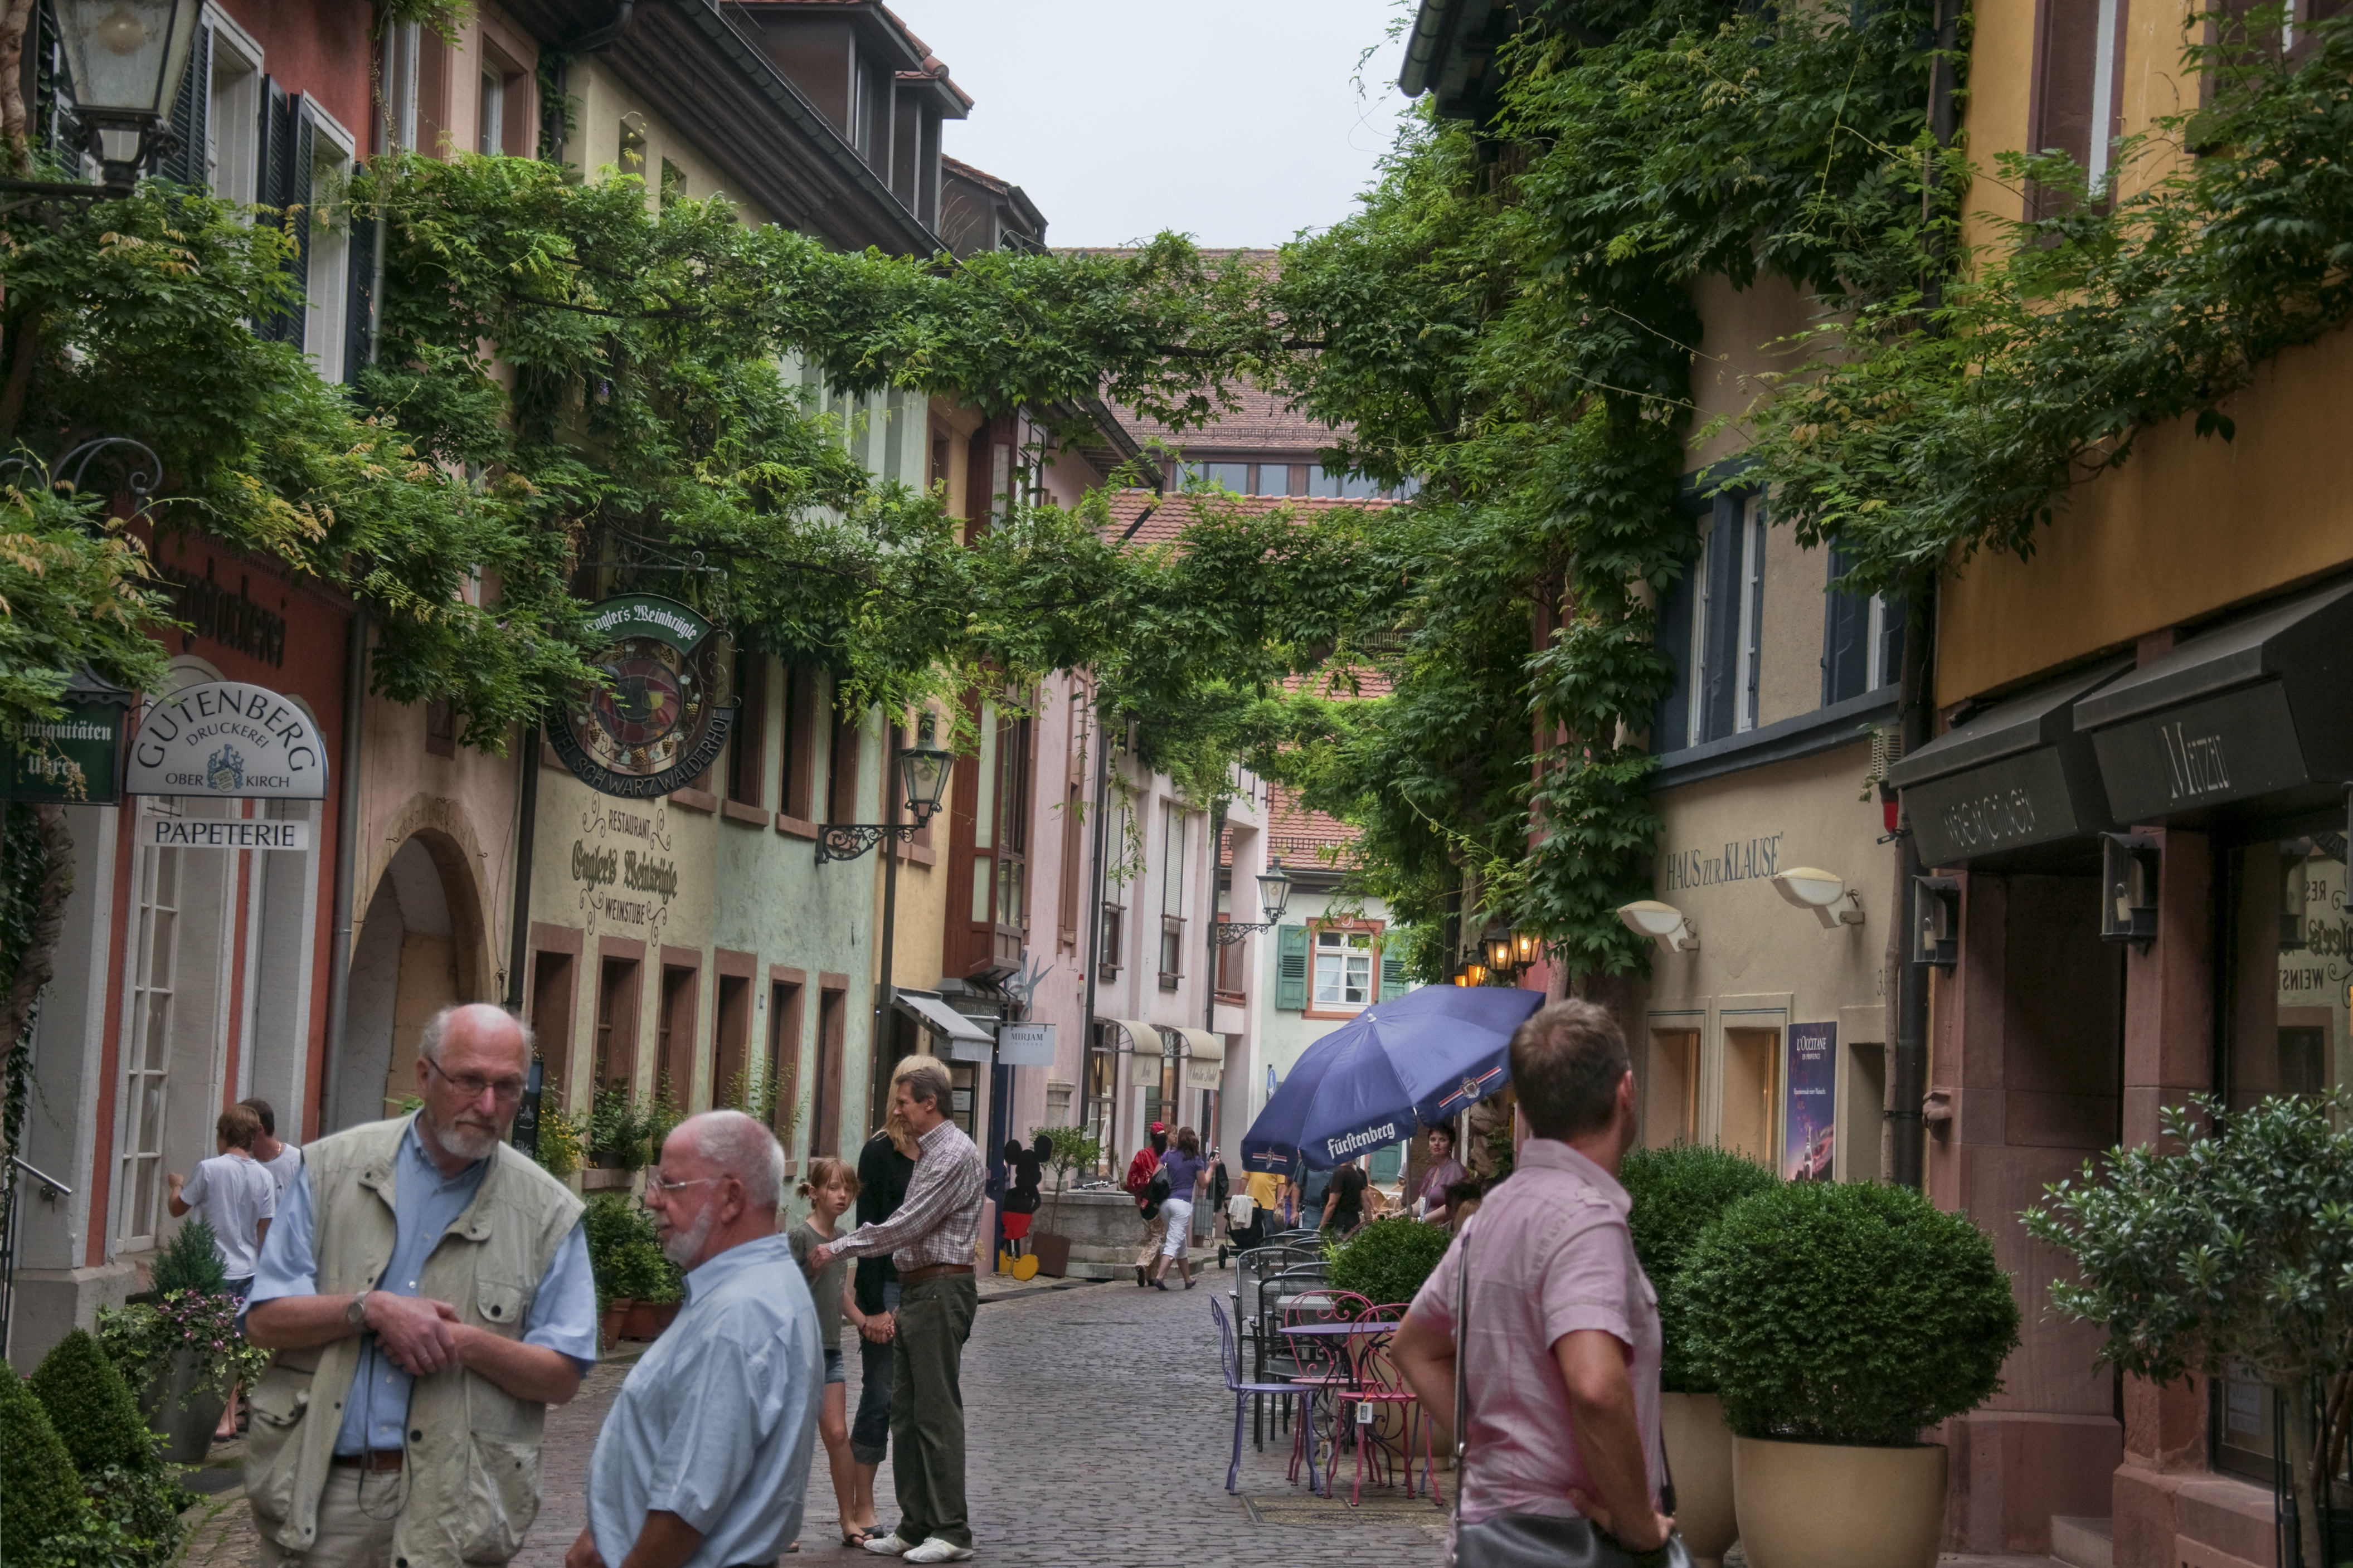 streets of freiburg germany flickr photo sharing. Black Bedroom Furniture Sets. Home Design Ideas